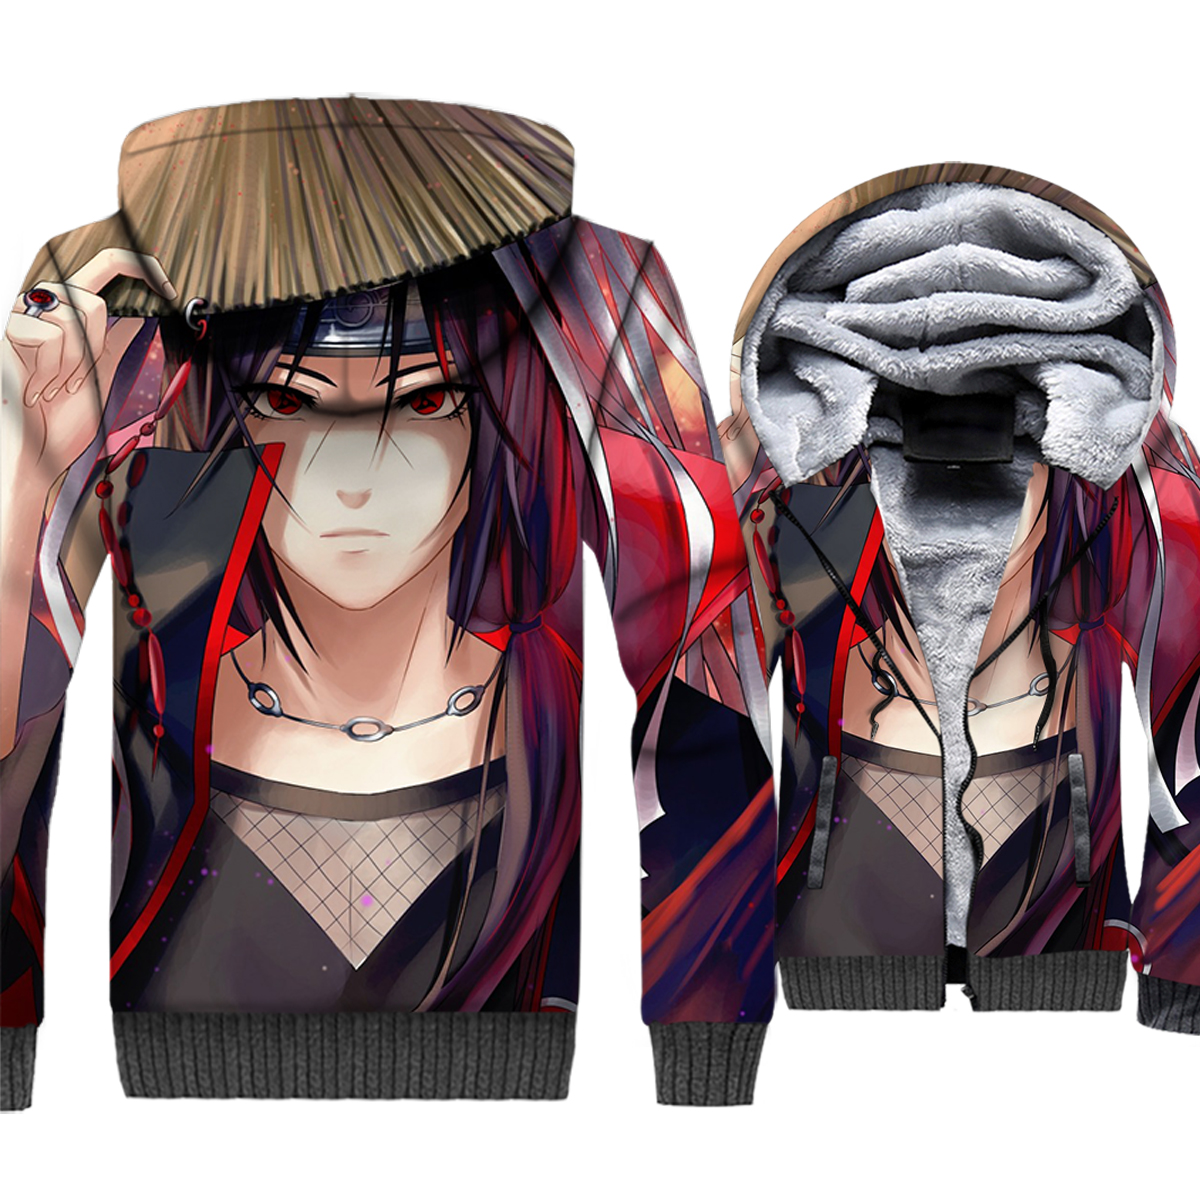 Anime Naruto Uchiha Itachi sweatshirts men casual wool liner jackets hooded 3D Print hoodies 2018 winer Thick warm coats M-5XL